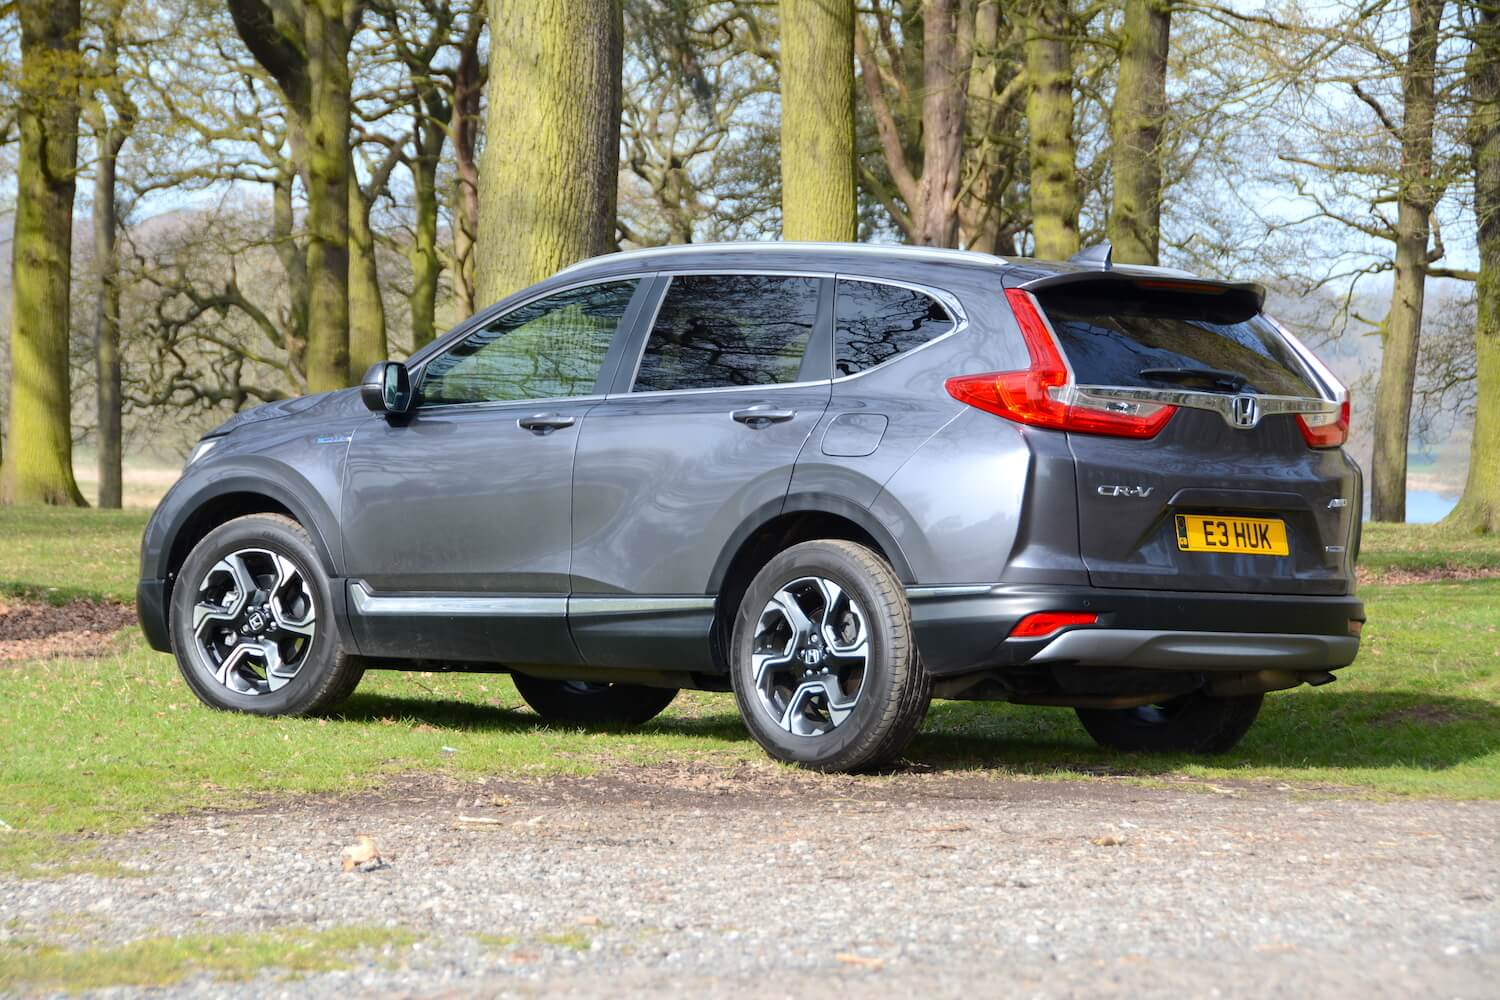 Learn more about this exciting. Honda Cr V Hybrid Awd Ex 2019 Review Greencarguide Co Uk